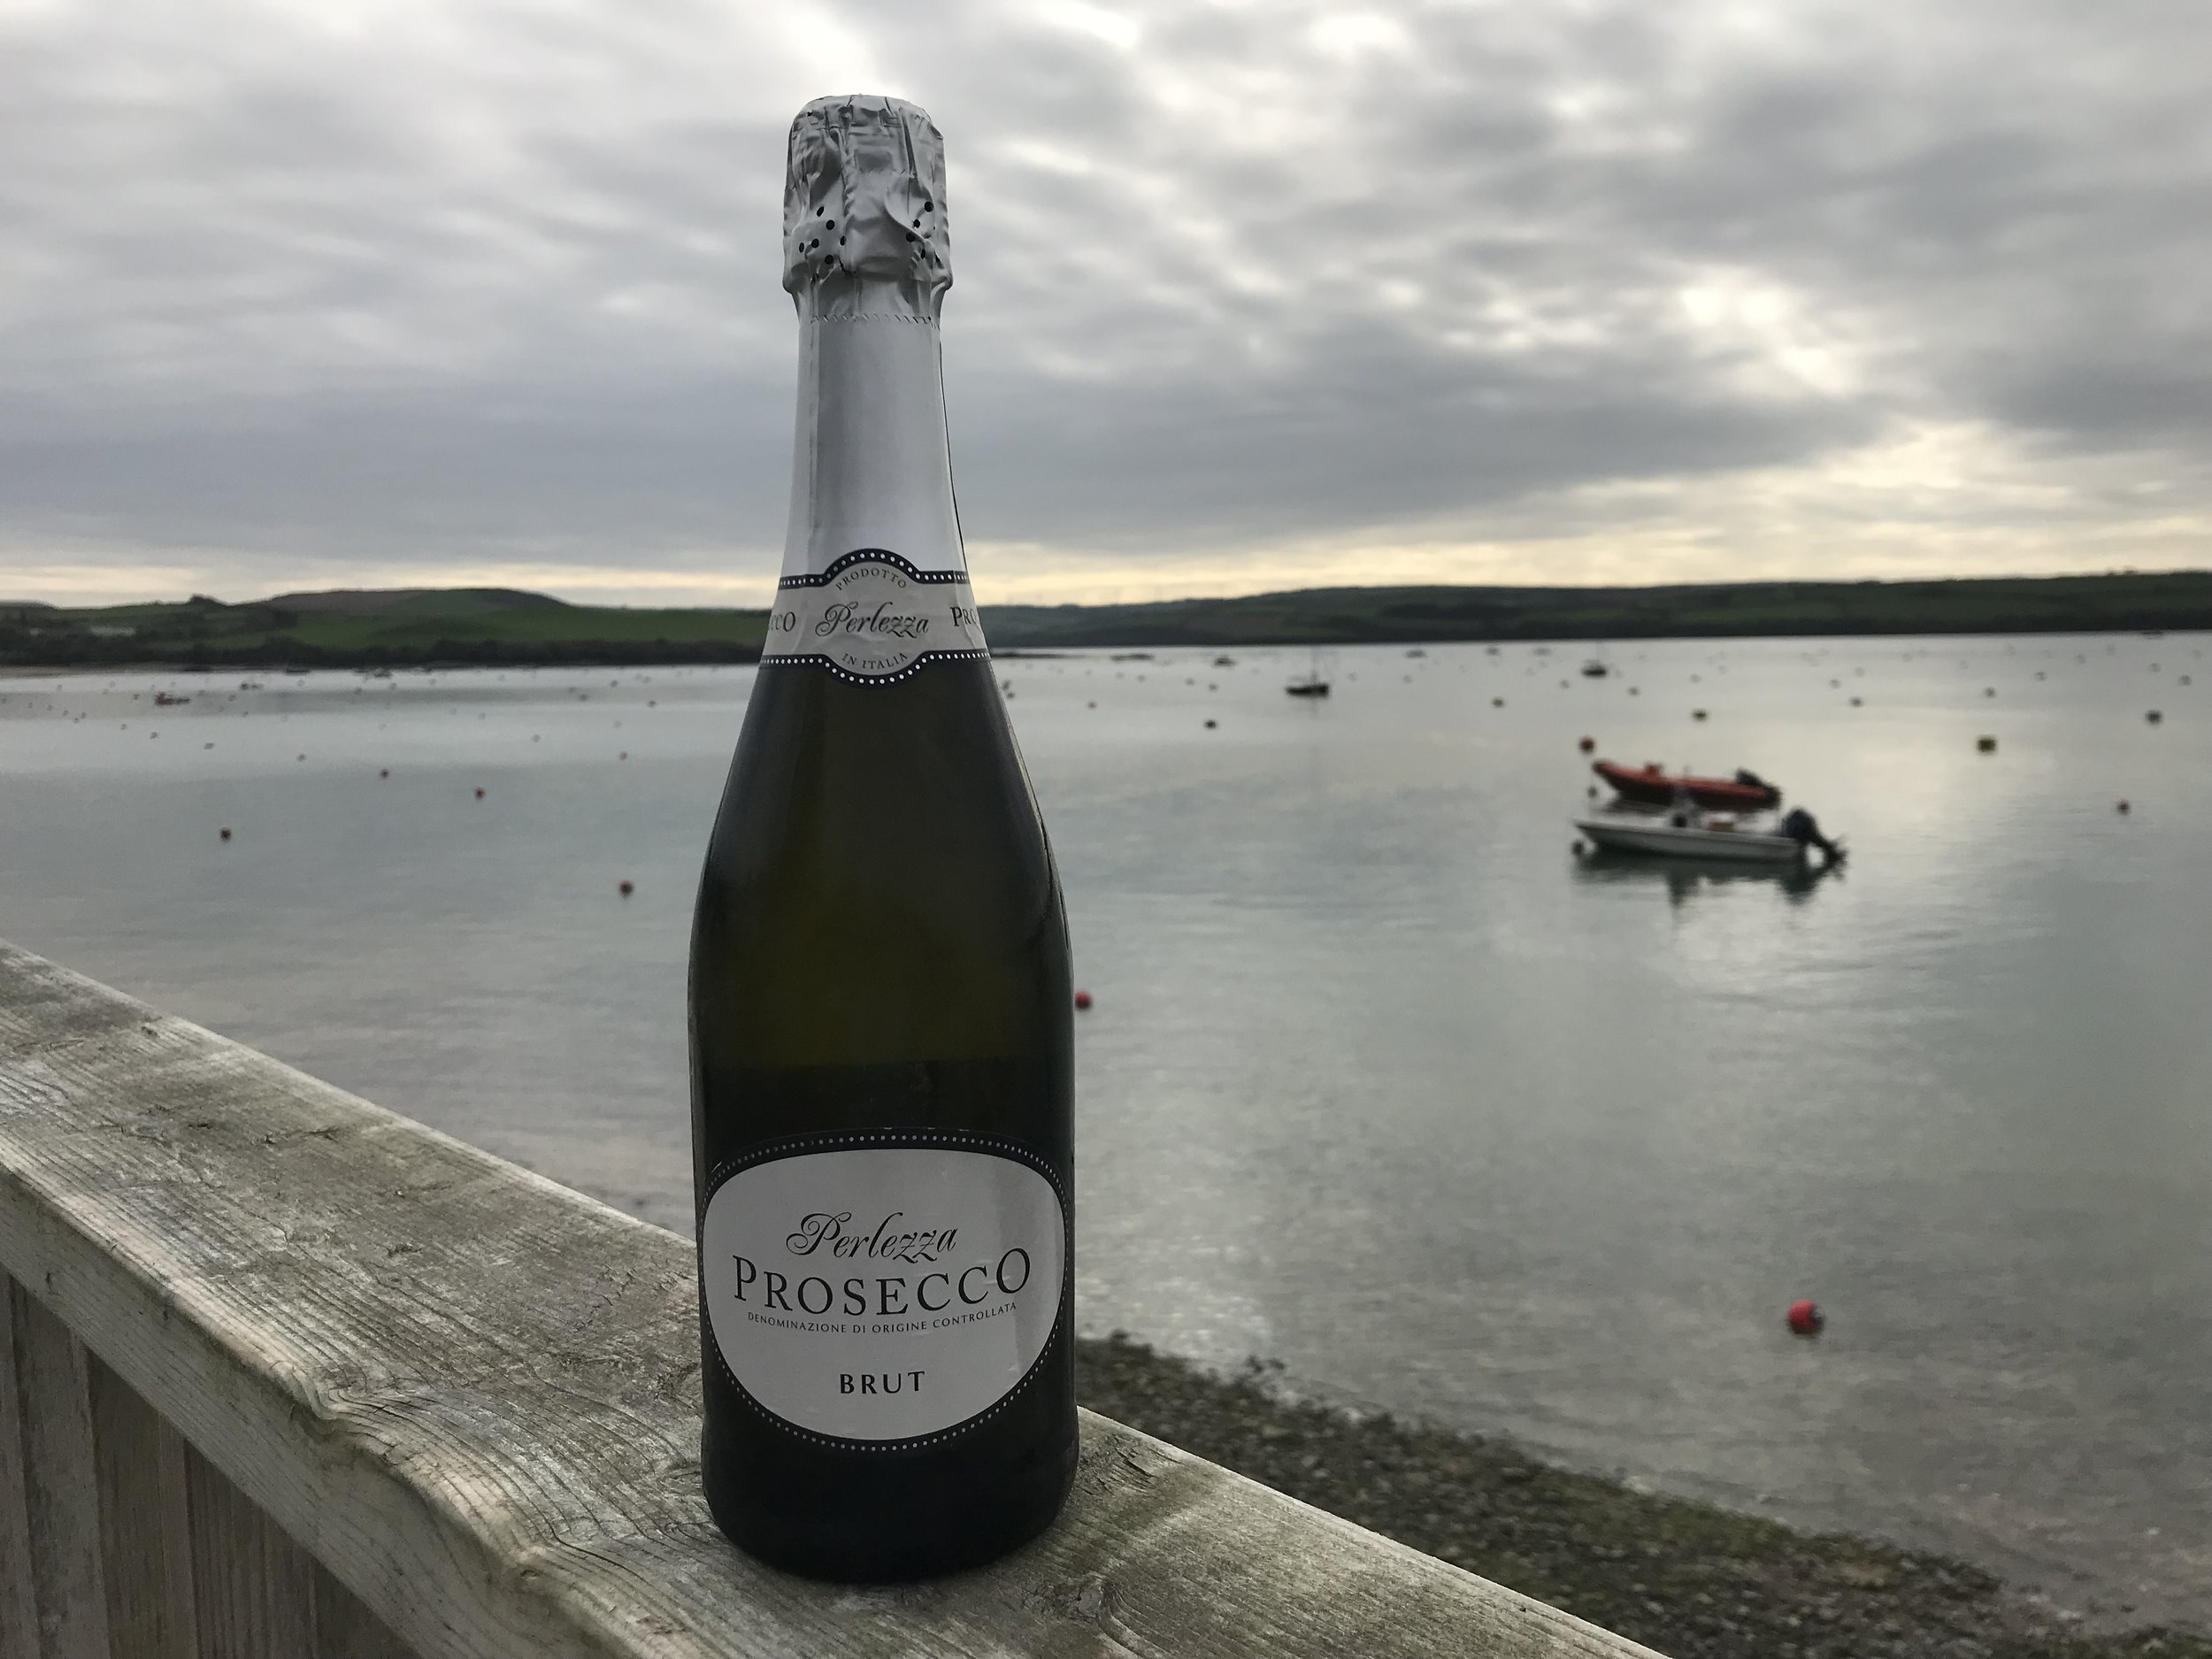 Paddle and Prosecco -